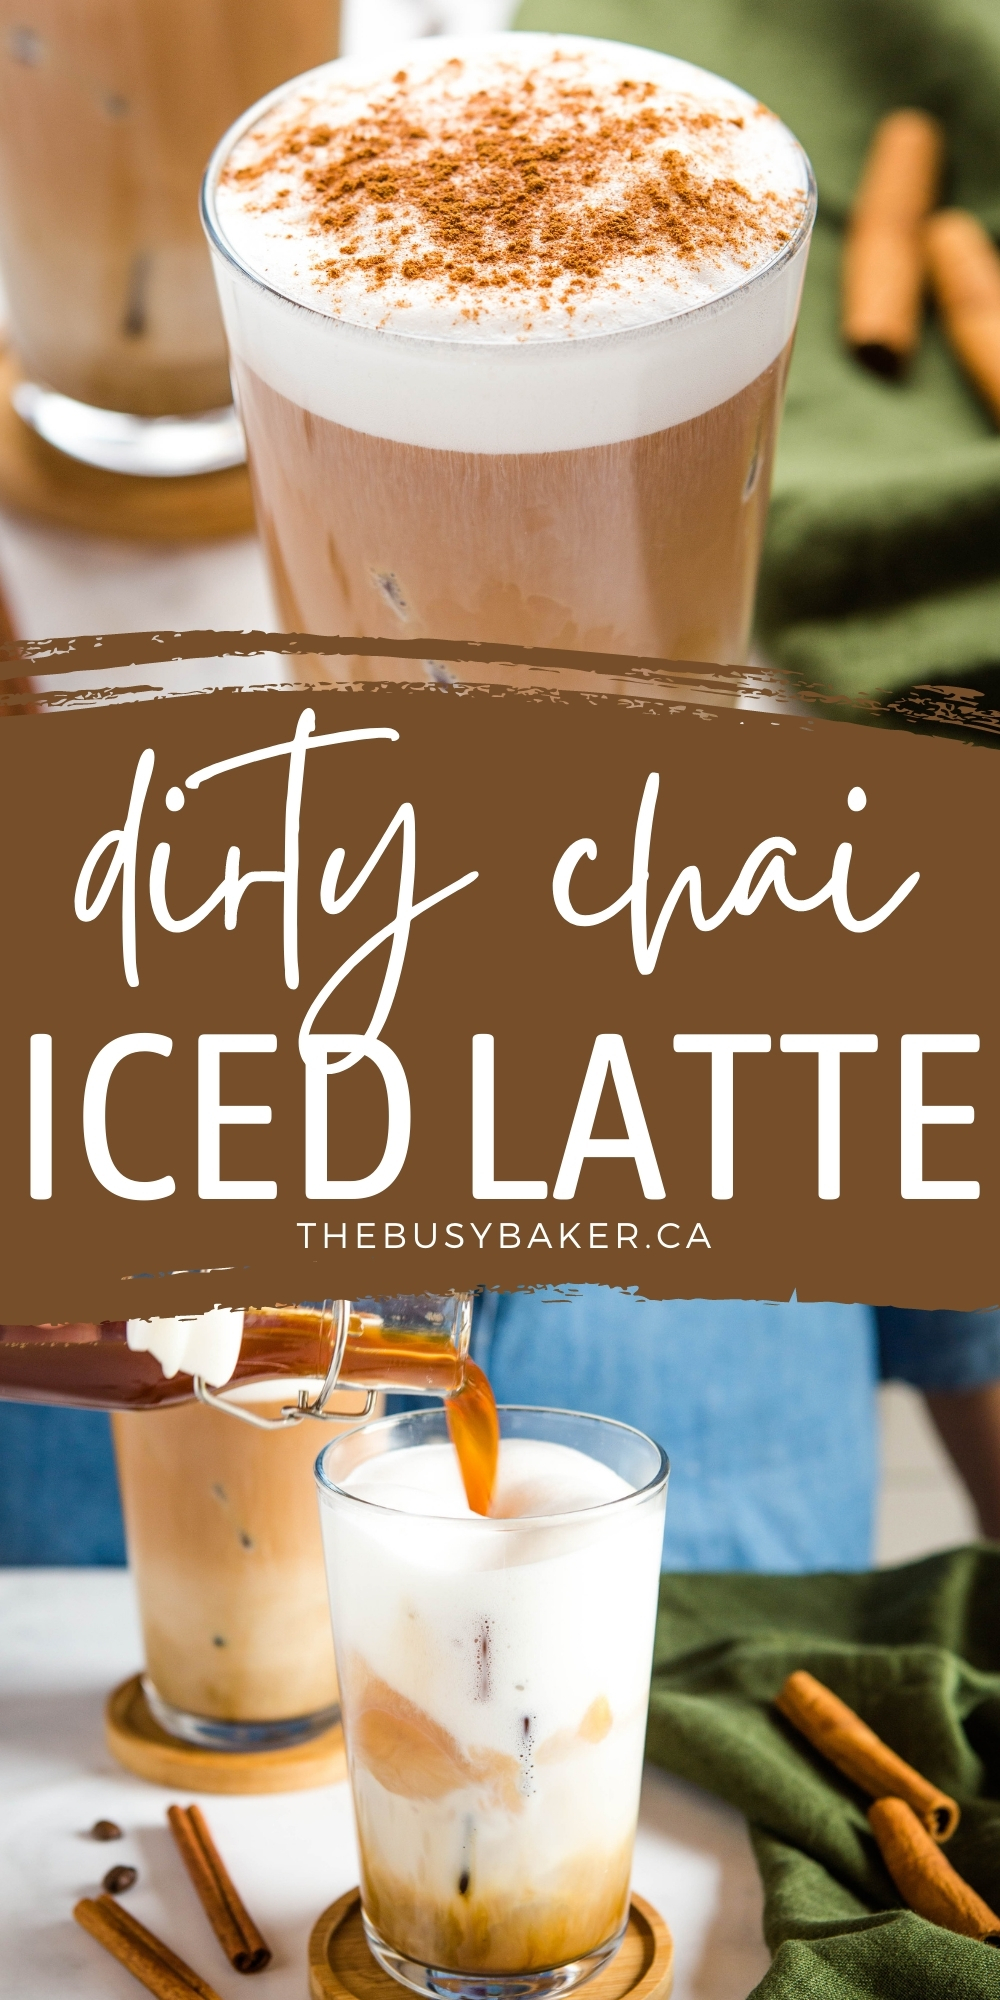 This Dirty Chai Latte is the perfect iced coffee drink for chai lovers - Simple espresso, foamed milk and spicy chai, sweetened with a simple cinnamon syrup! Easy to make dairy-free and sugar-free! Recipe from thebusybaker.ca! #dirtychai #latte #starbucks #copycat #coffee #coffeeshop #chailatte #espresso via @busybakerblog